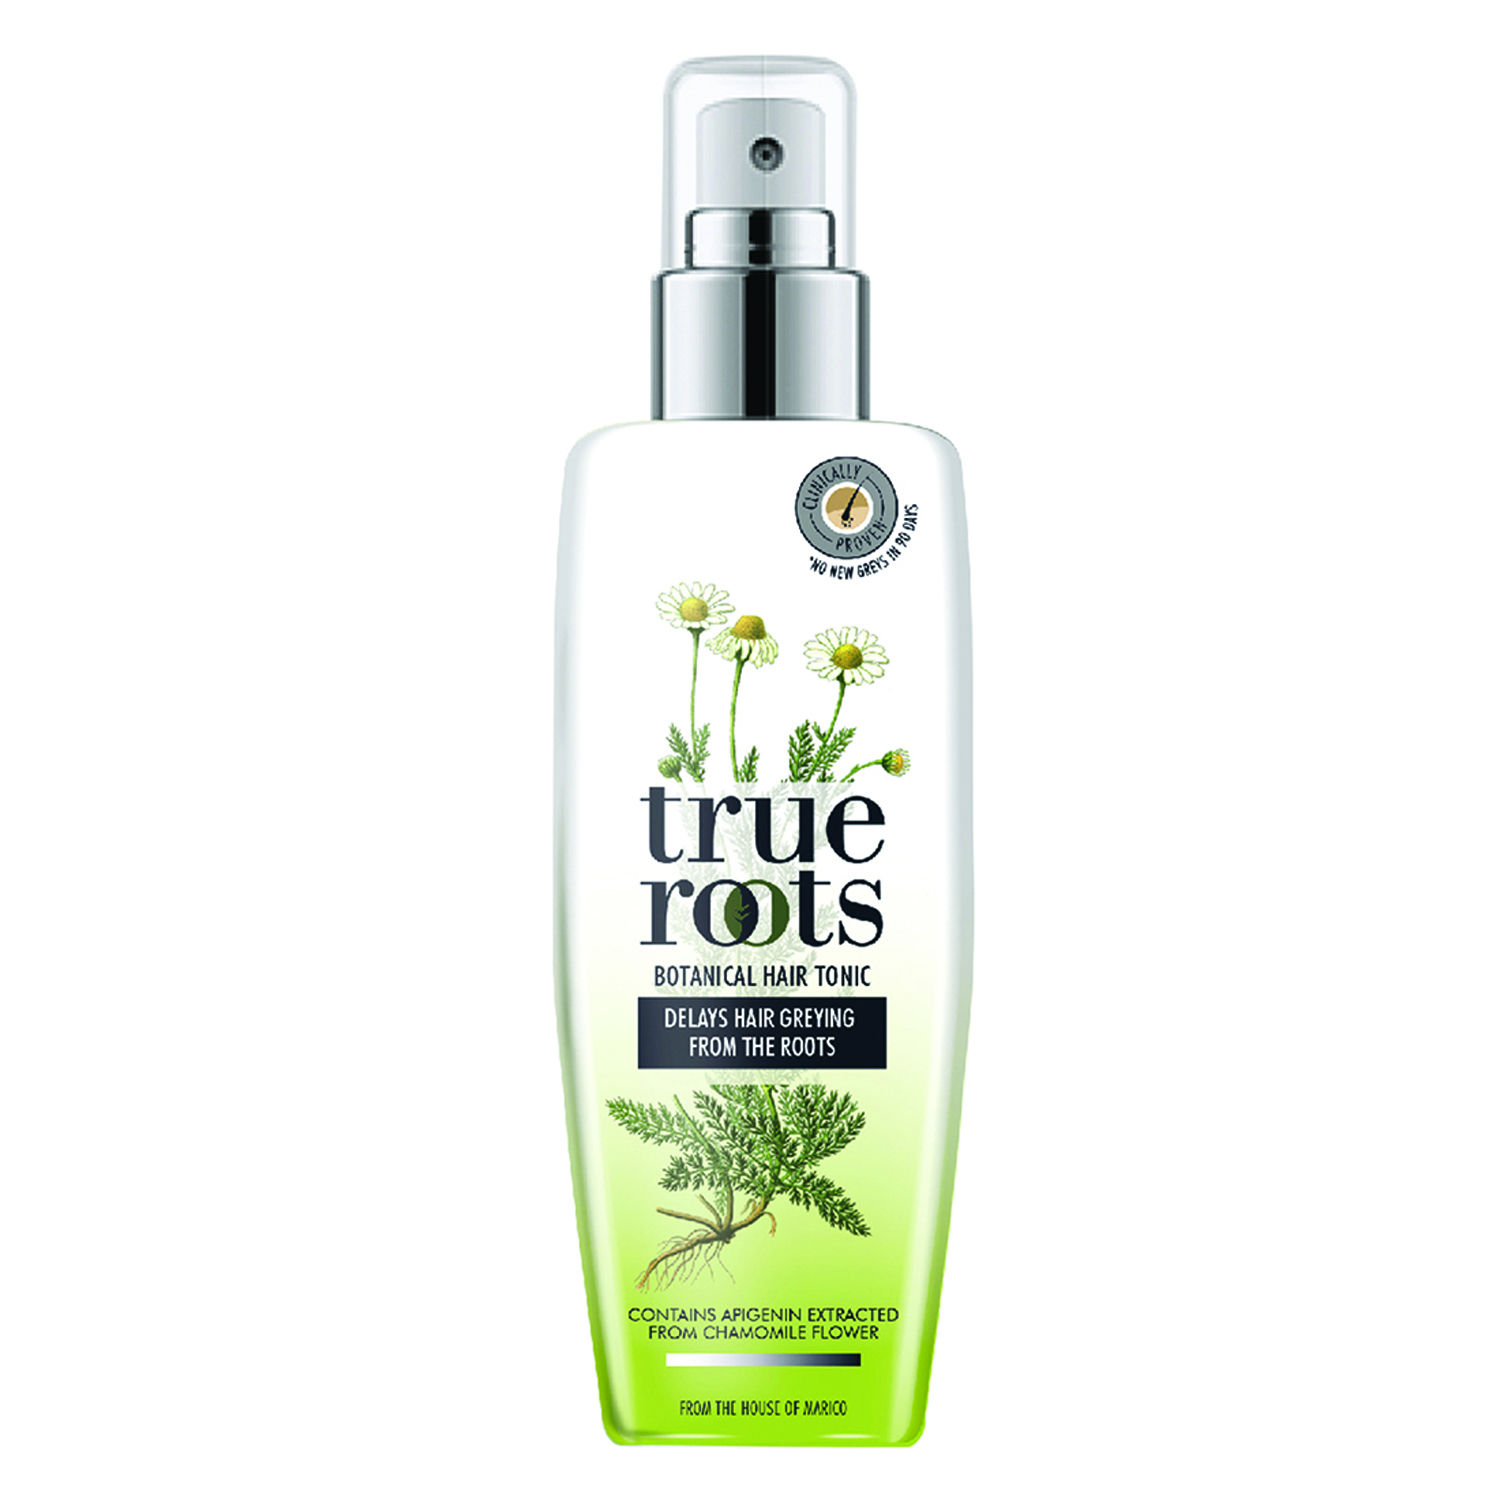 True Roots Botanical Hair Tonic to Delay Hair Greying